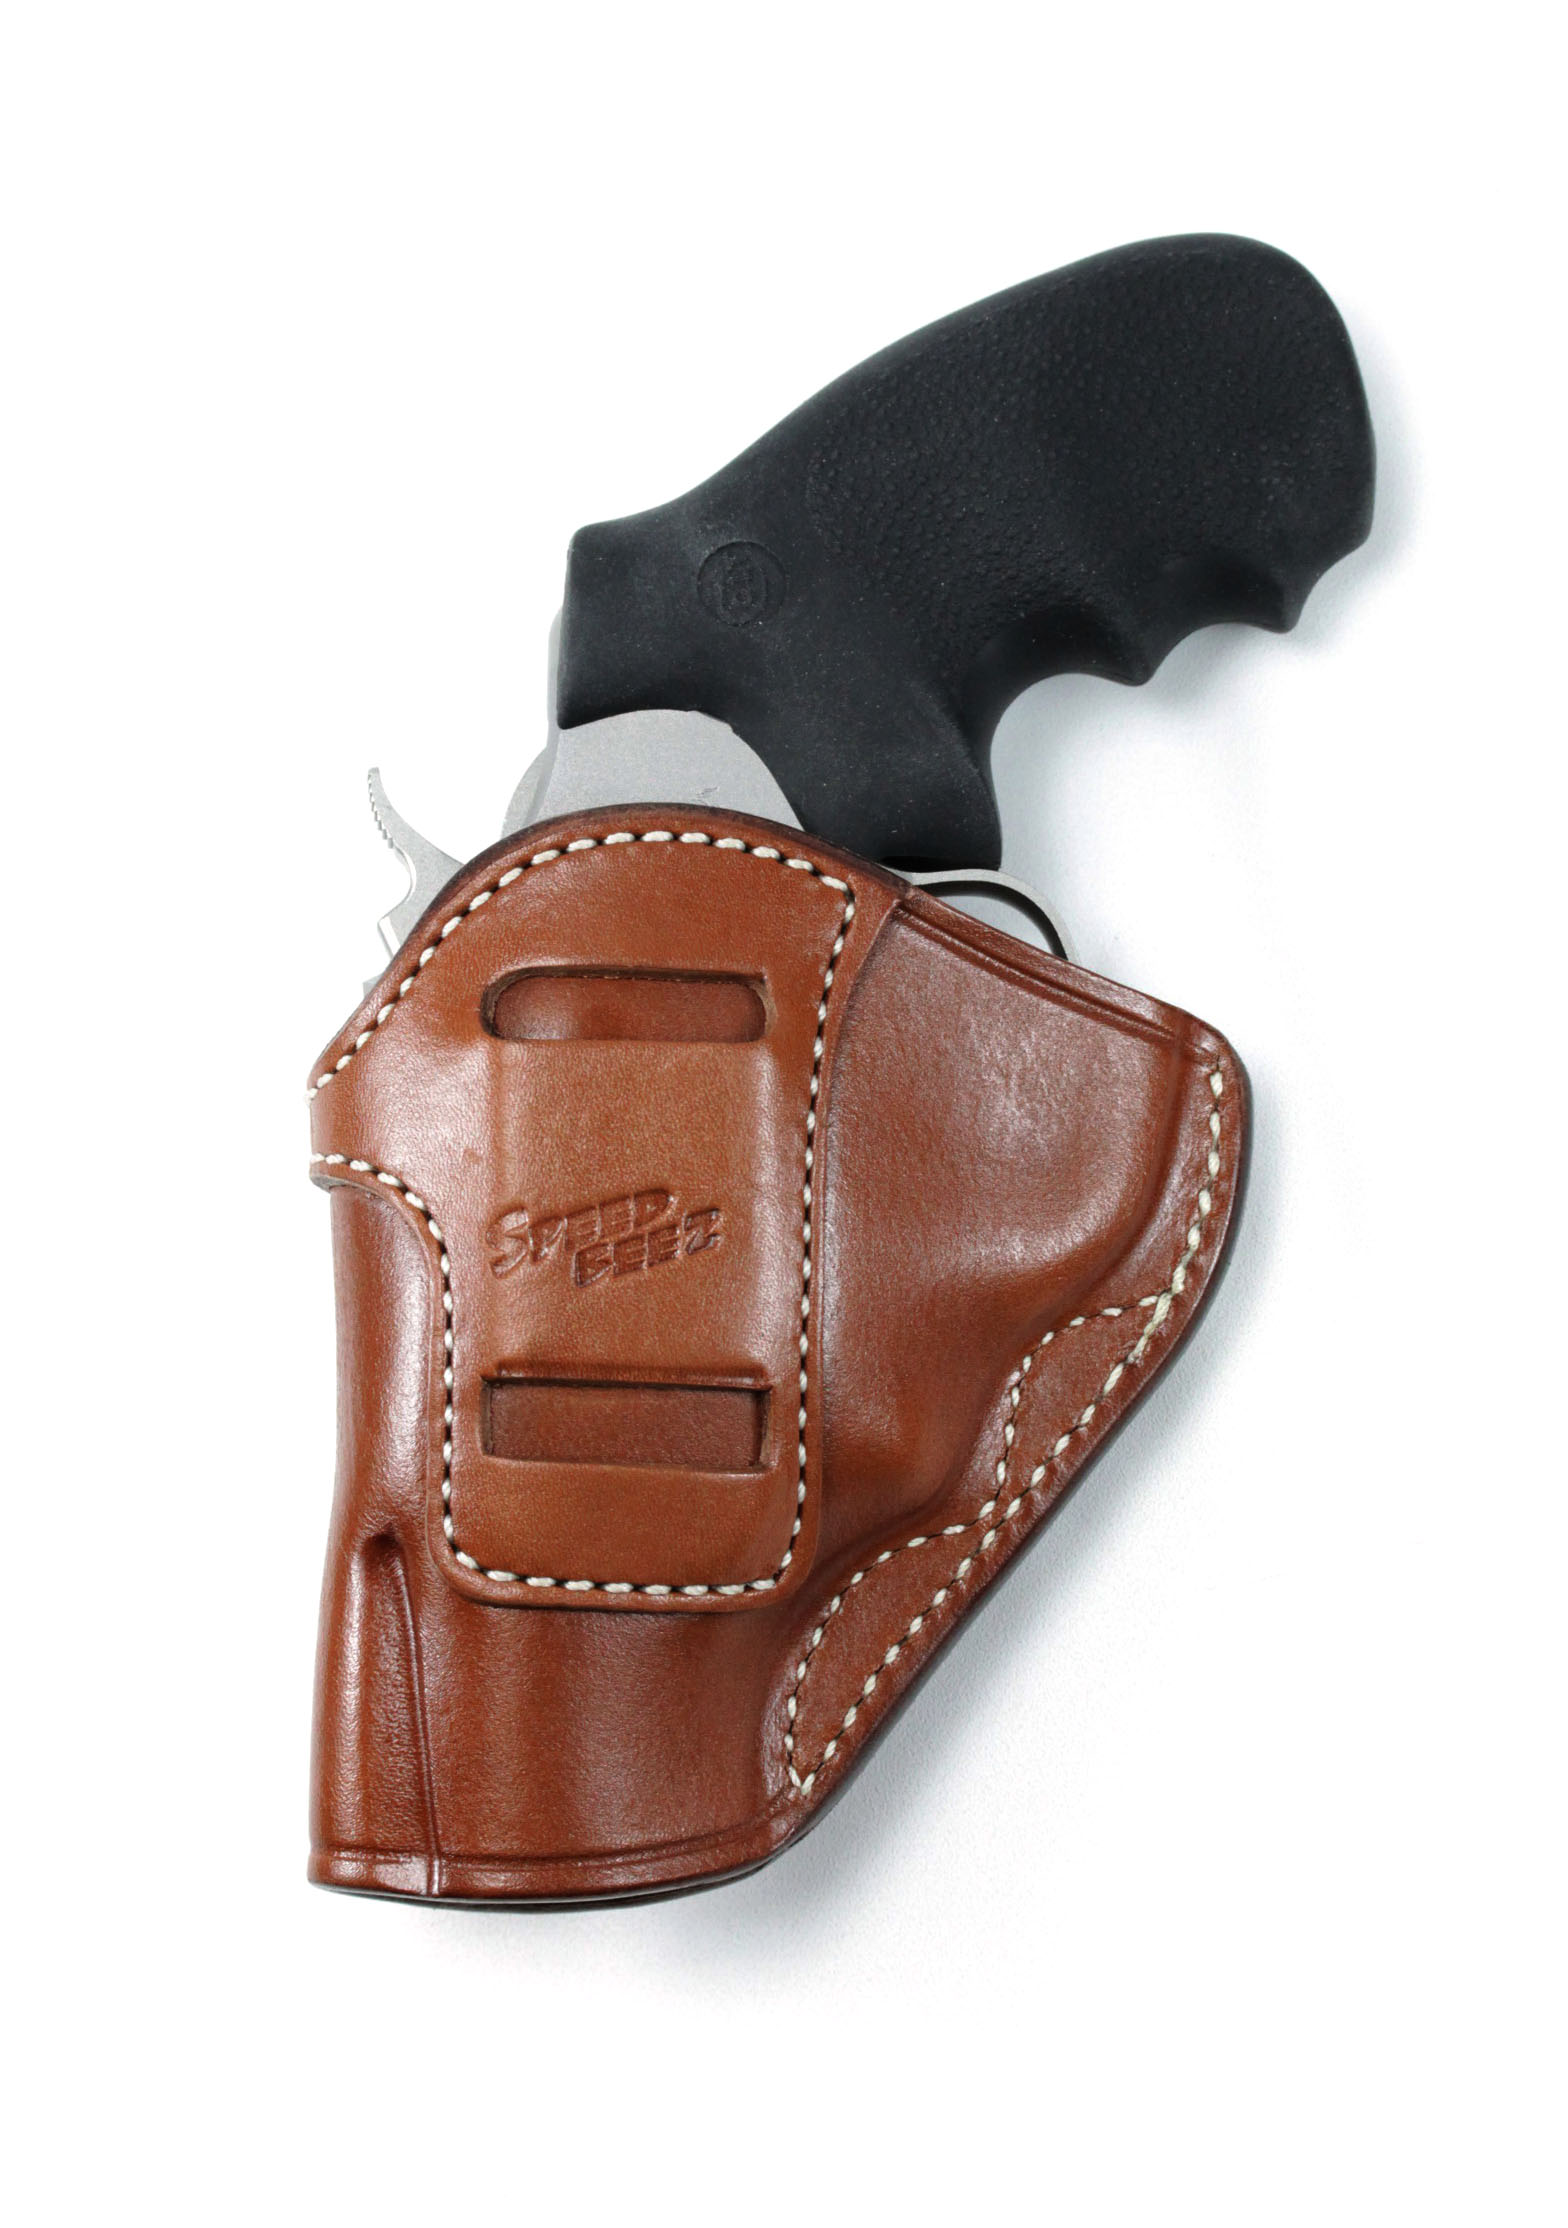 SPEED BEEZ® Leather Holster for Inside the Waist Band (IWB) Concealment -  Revlover